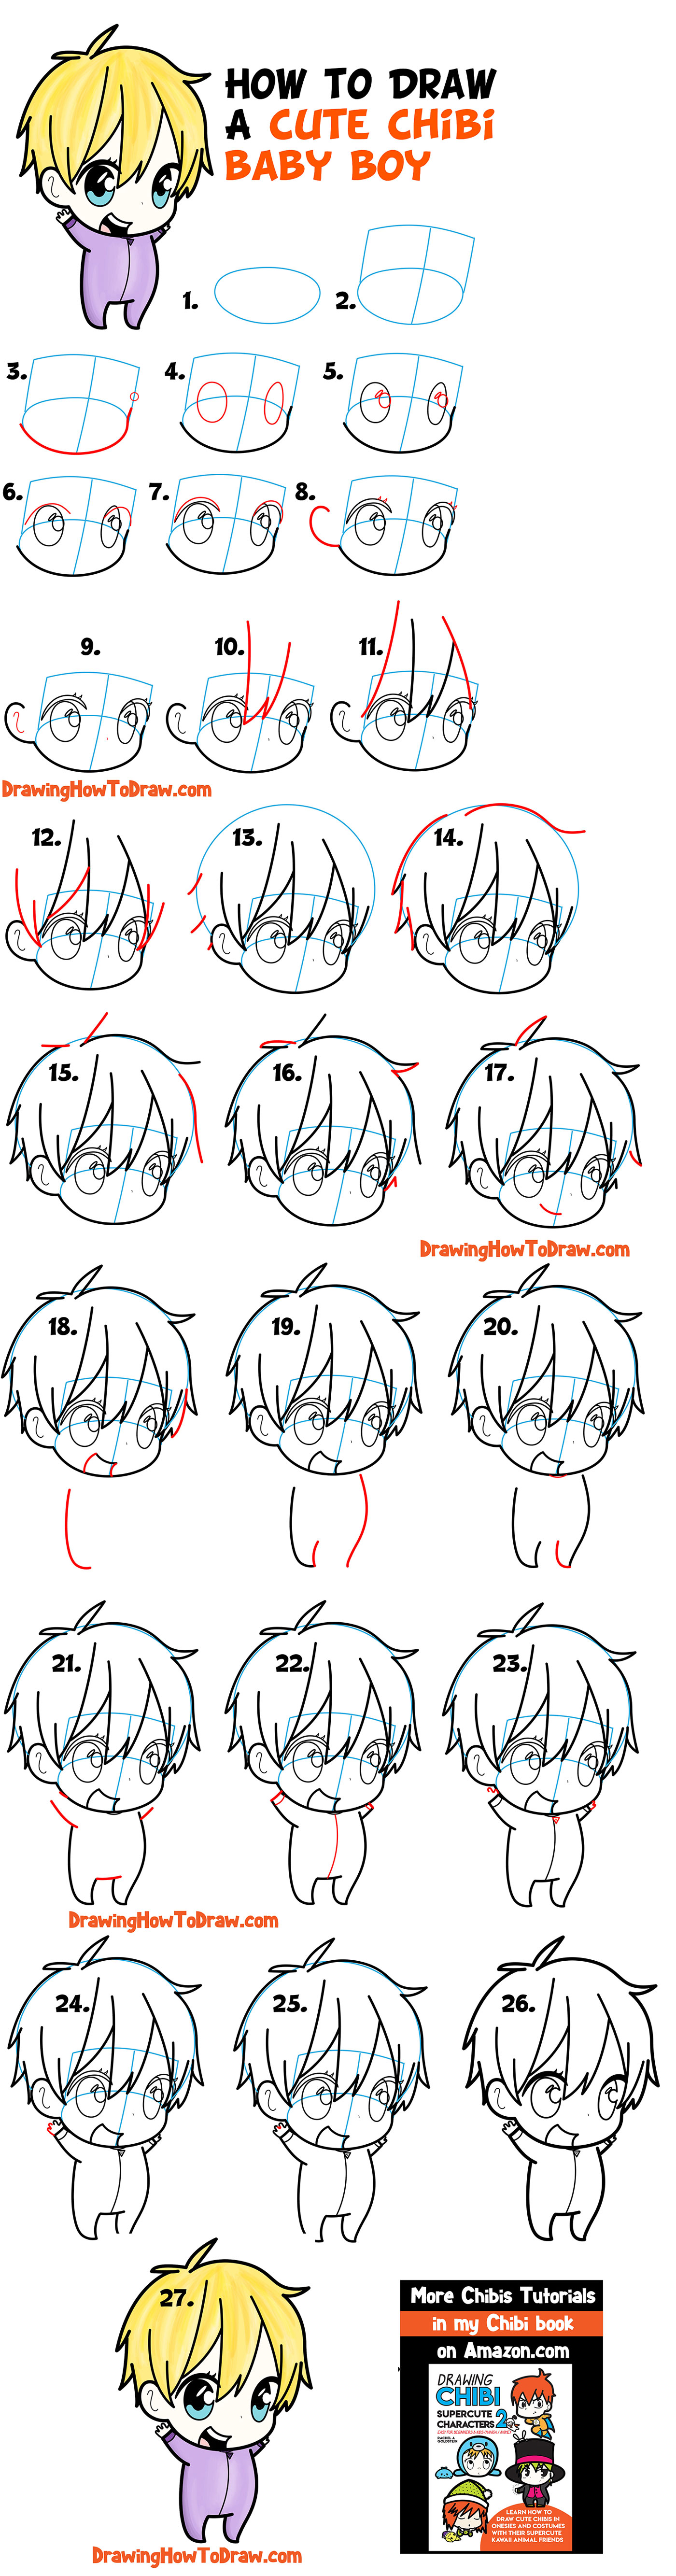 Learn How to Draw a Cute Chibi Boy Easy Step by Step Drawing Tutorial for Kids & Beginners